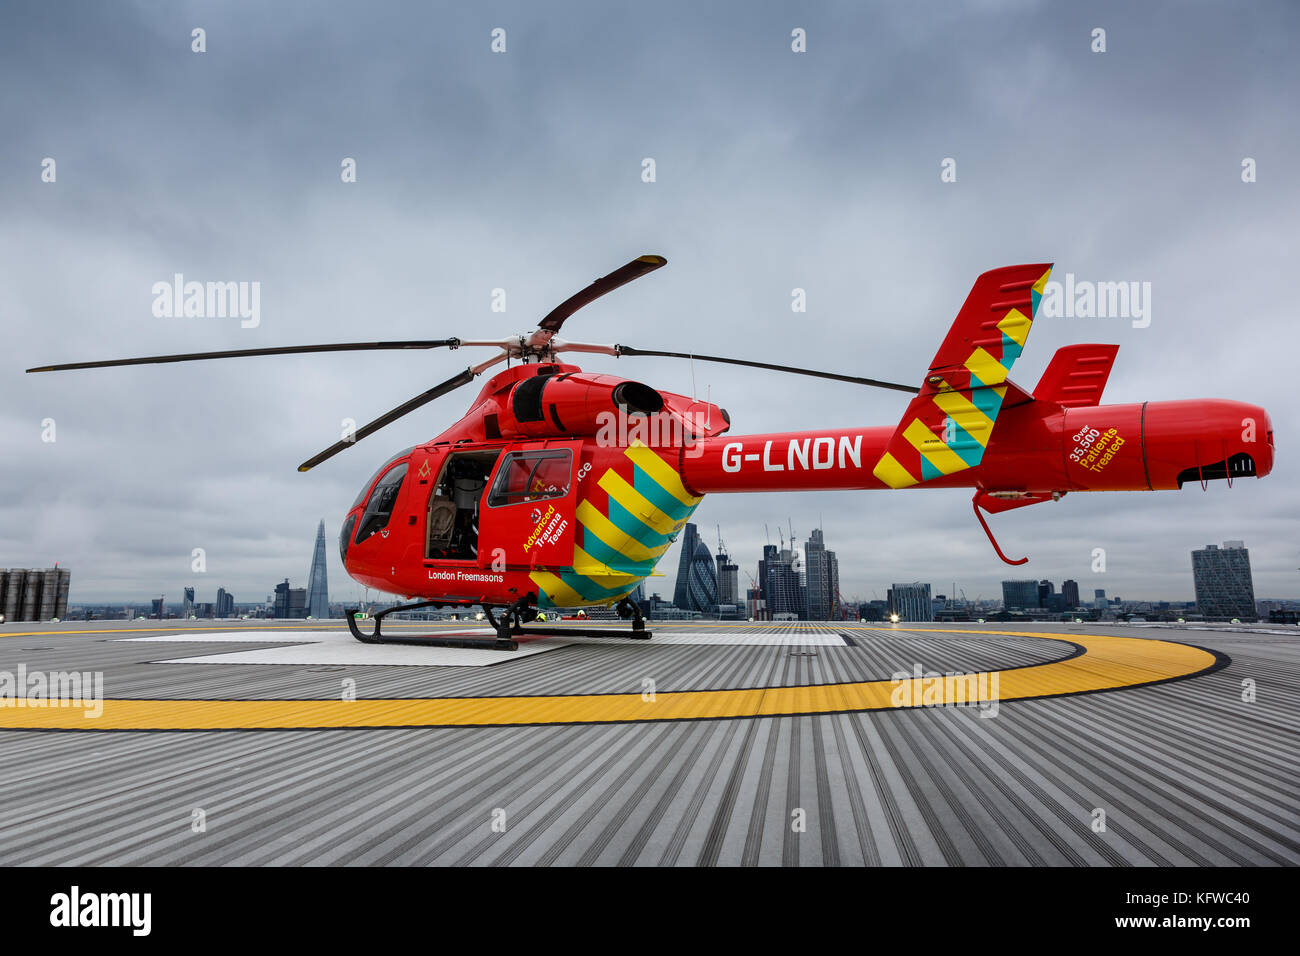 London Air Ambulance lands on the helipad of the Royal London Hospital - Stock Image